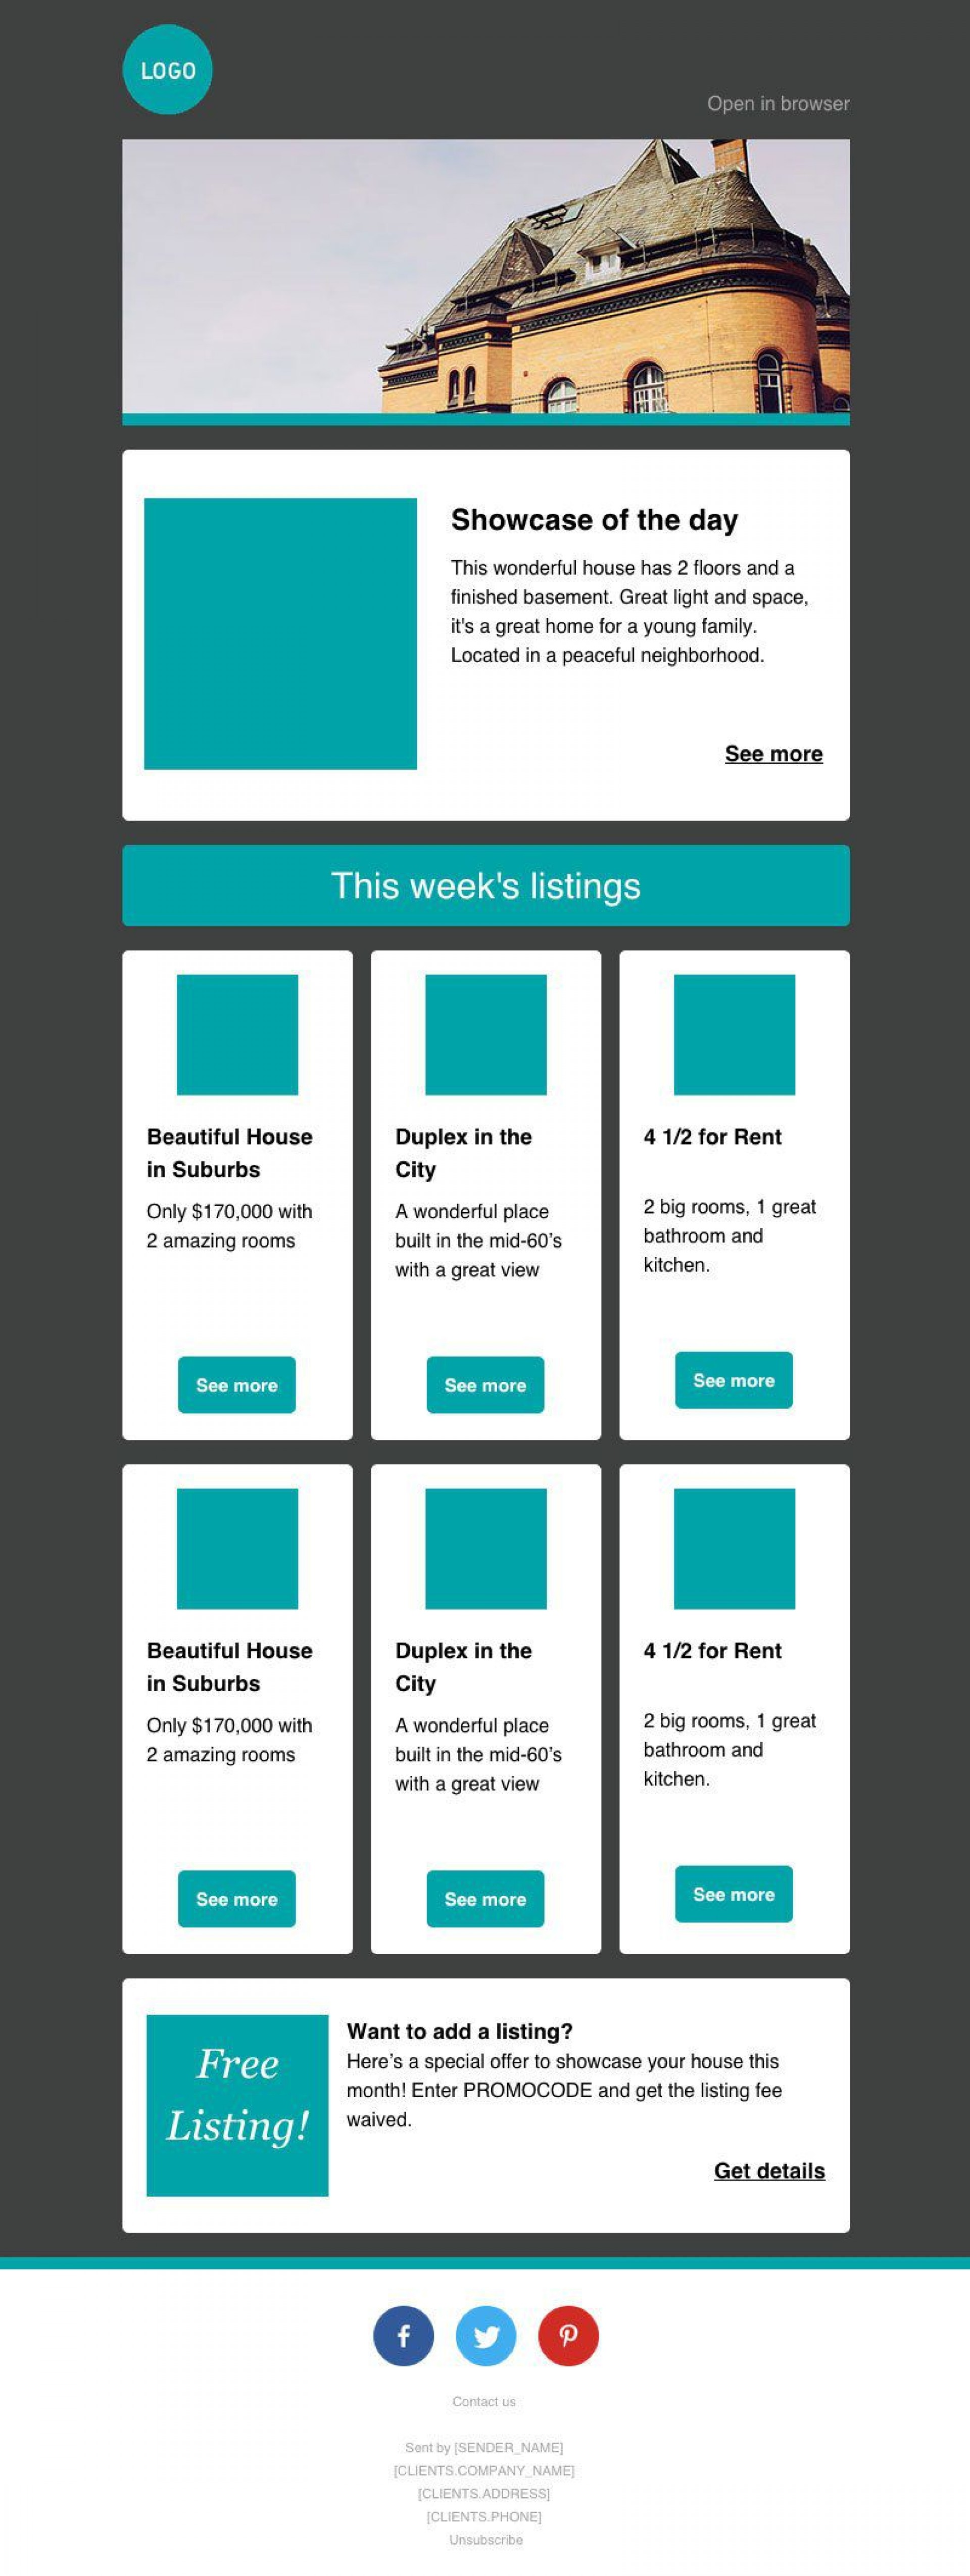 006 Outstanding Free Email Newsletter Template Download Example  Busines Psd1920